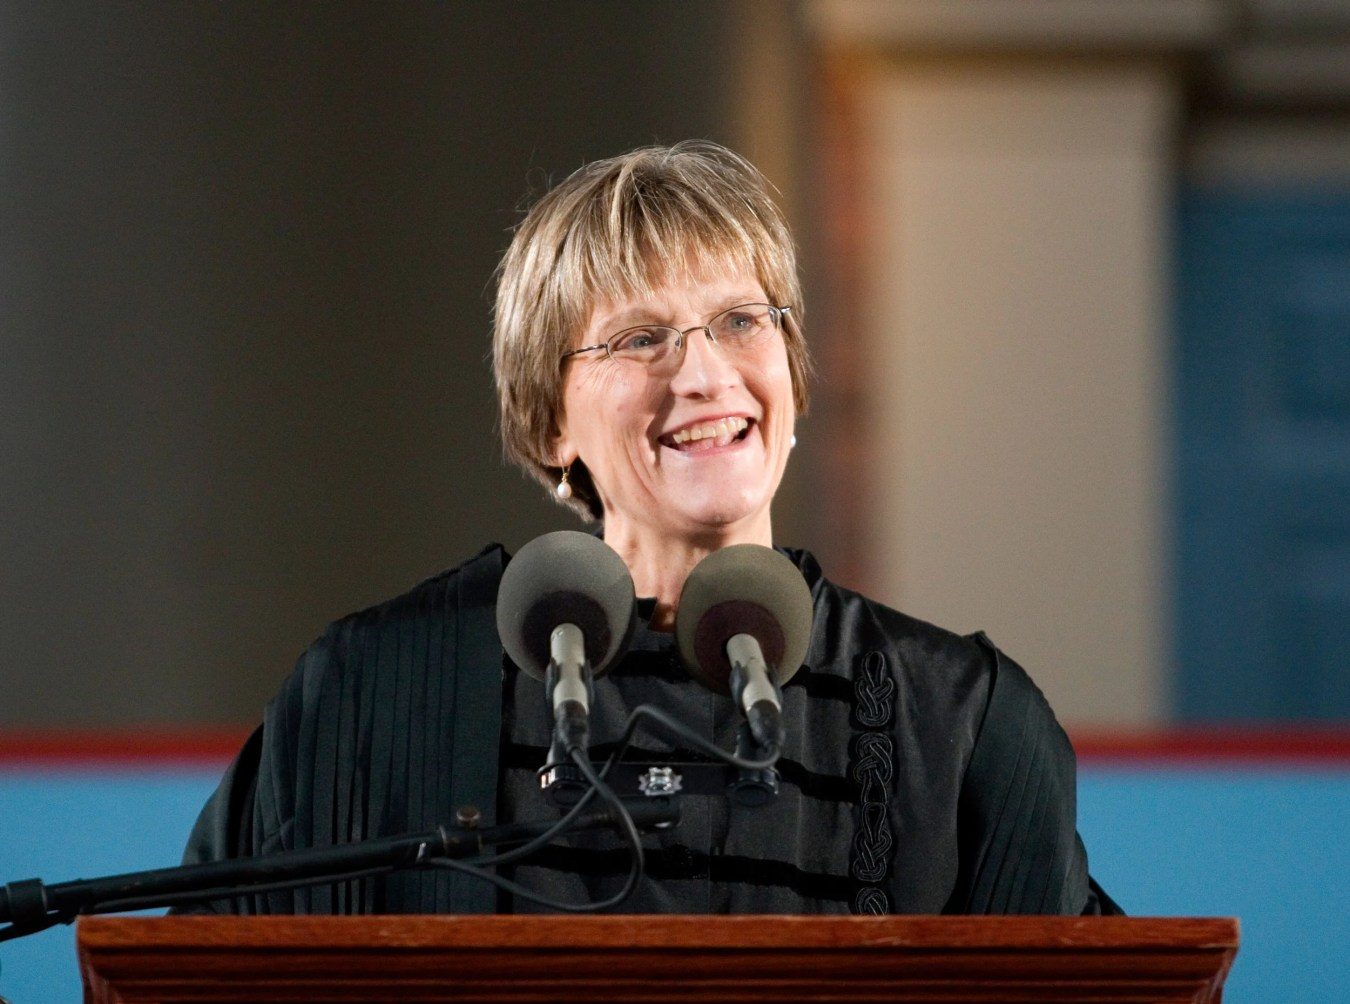 Drew Faust at podium during installation as Harvard president. Faust is installed as Harvard's 28th president in 2007. Jon Chase/Harvard file photo